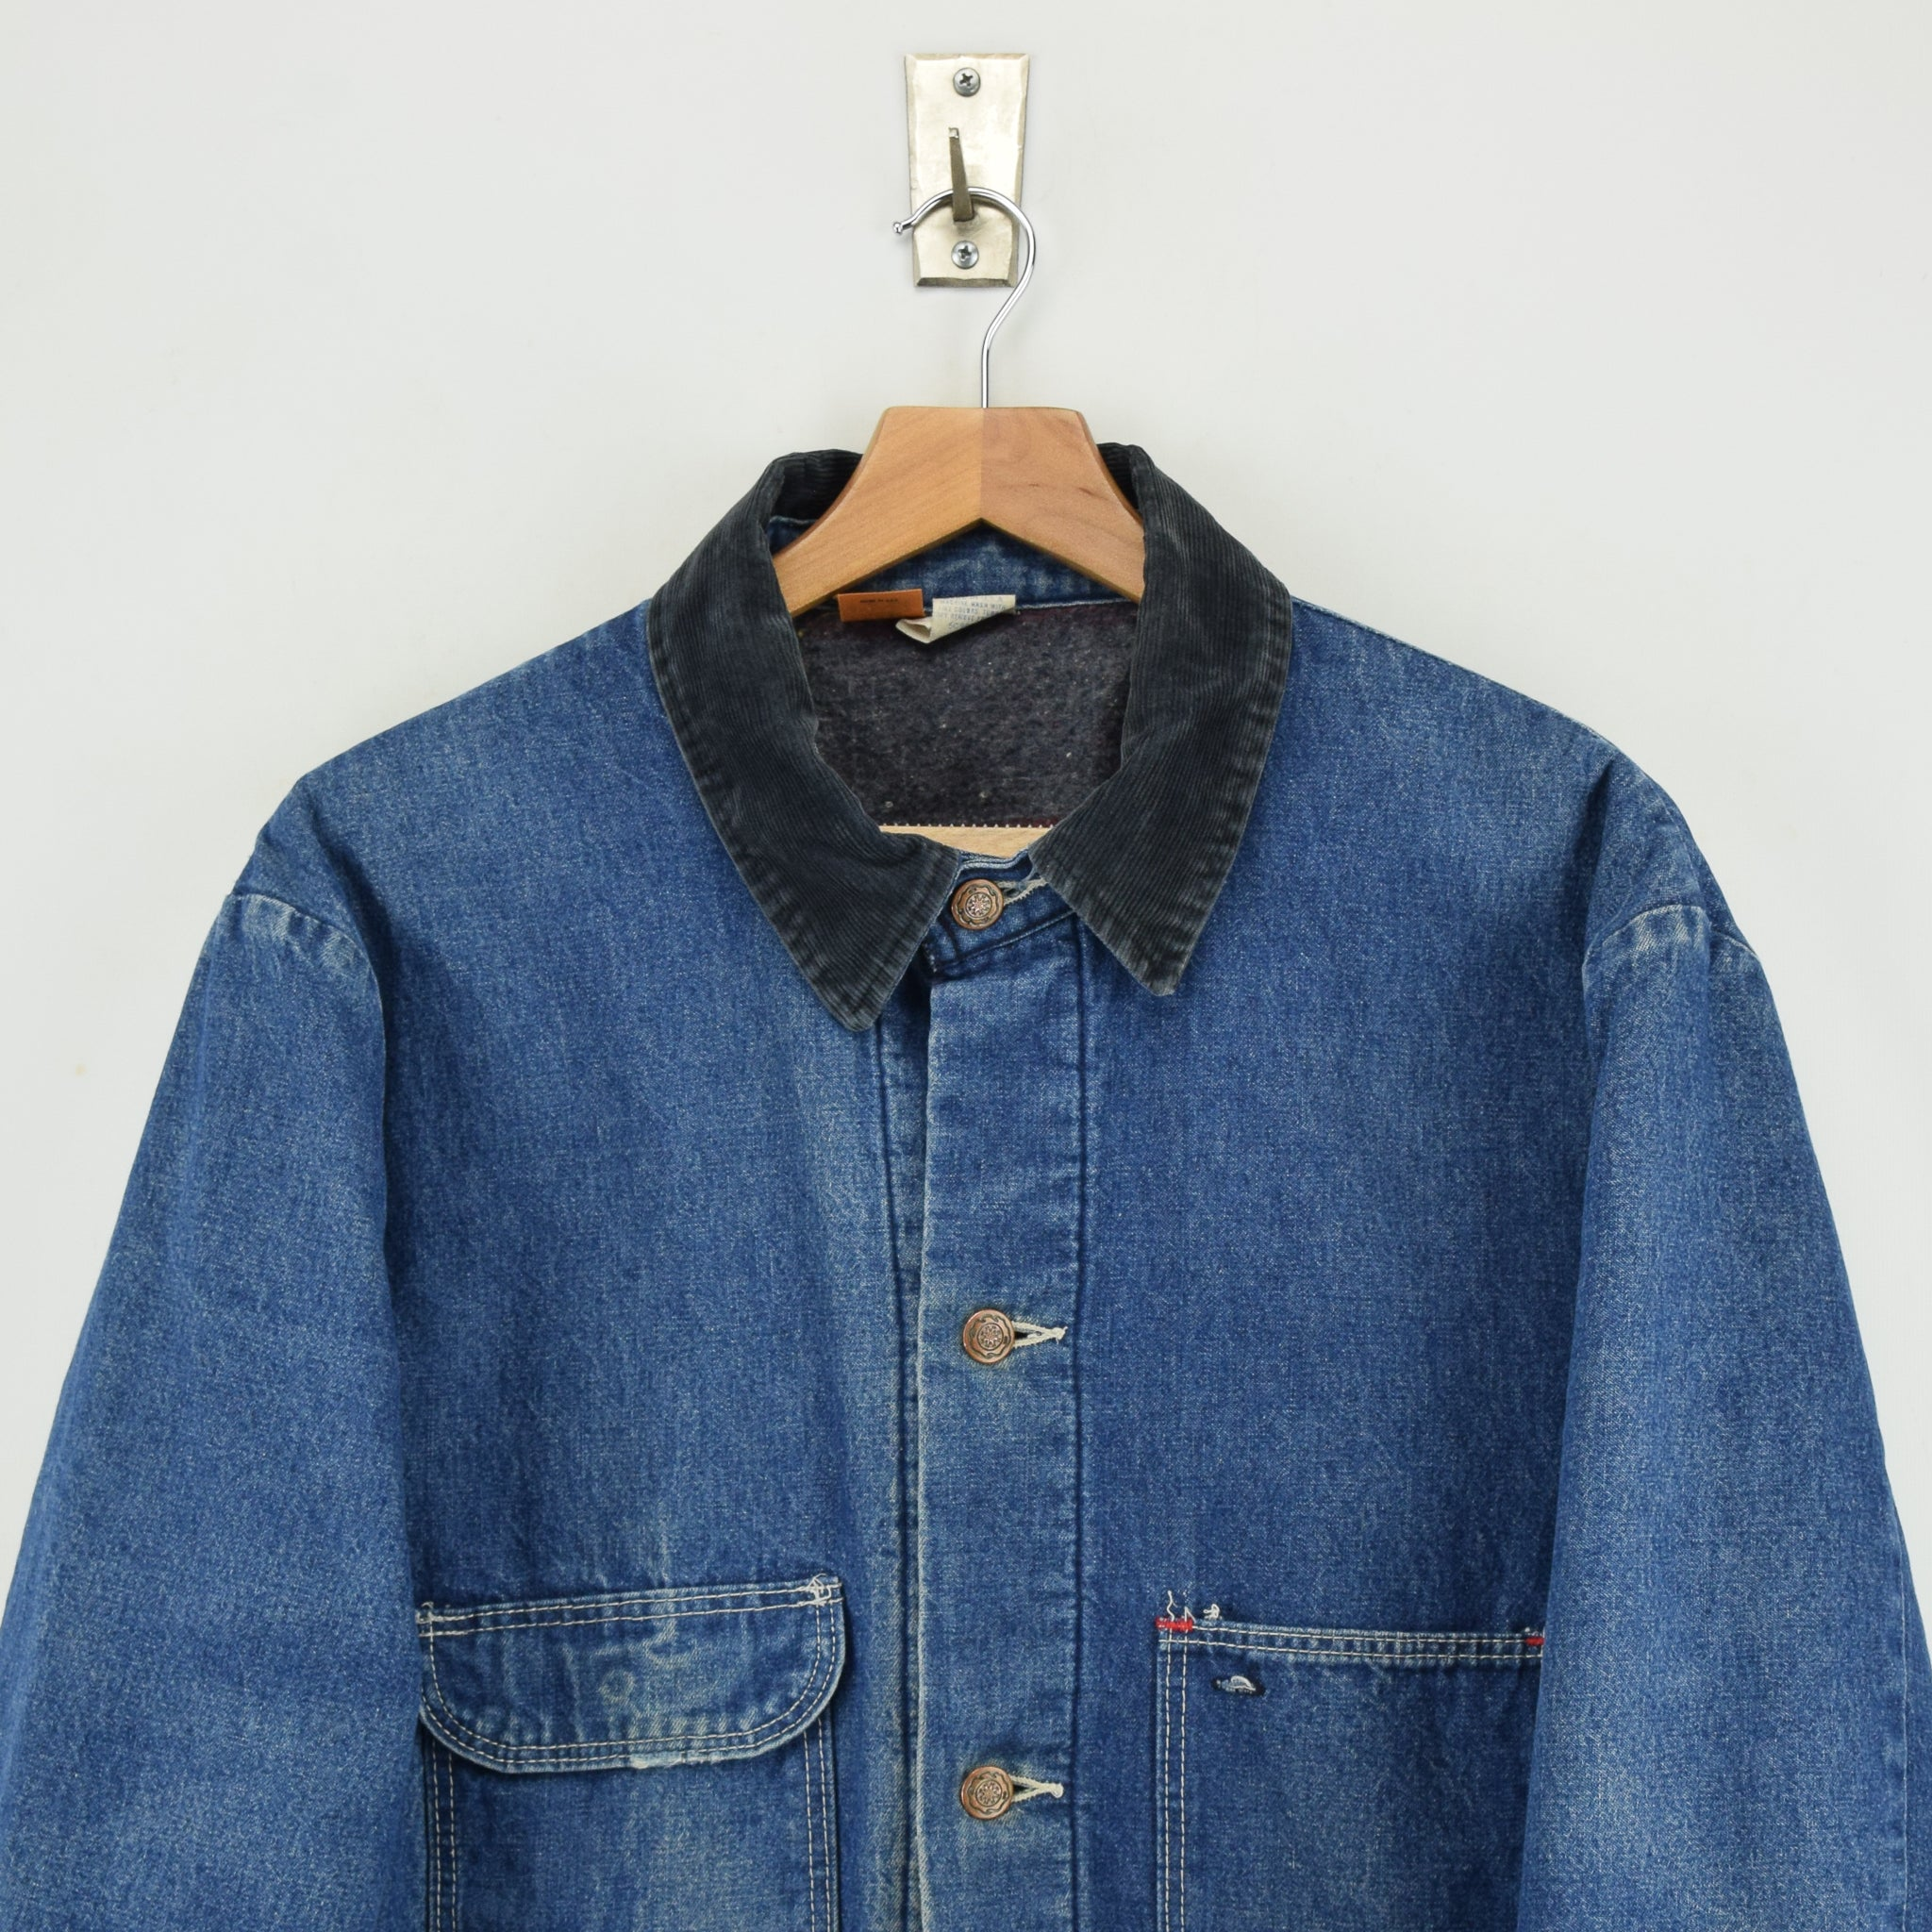 Vintage Wrangler Big Ben Blue Blanket Lined Denim Chore Jacket Made in USA L chest